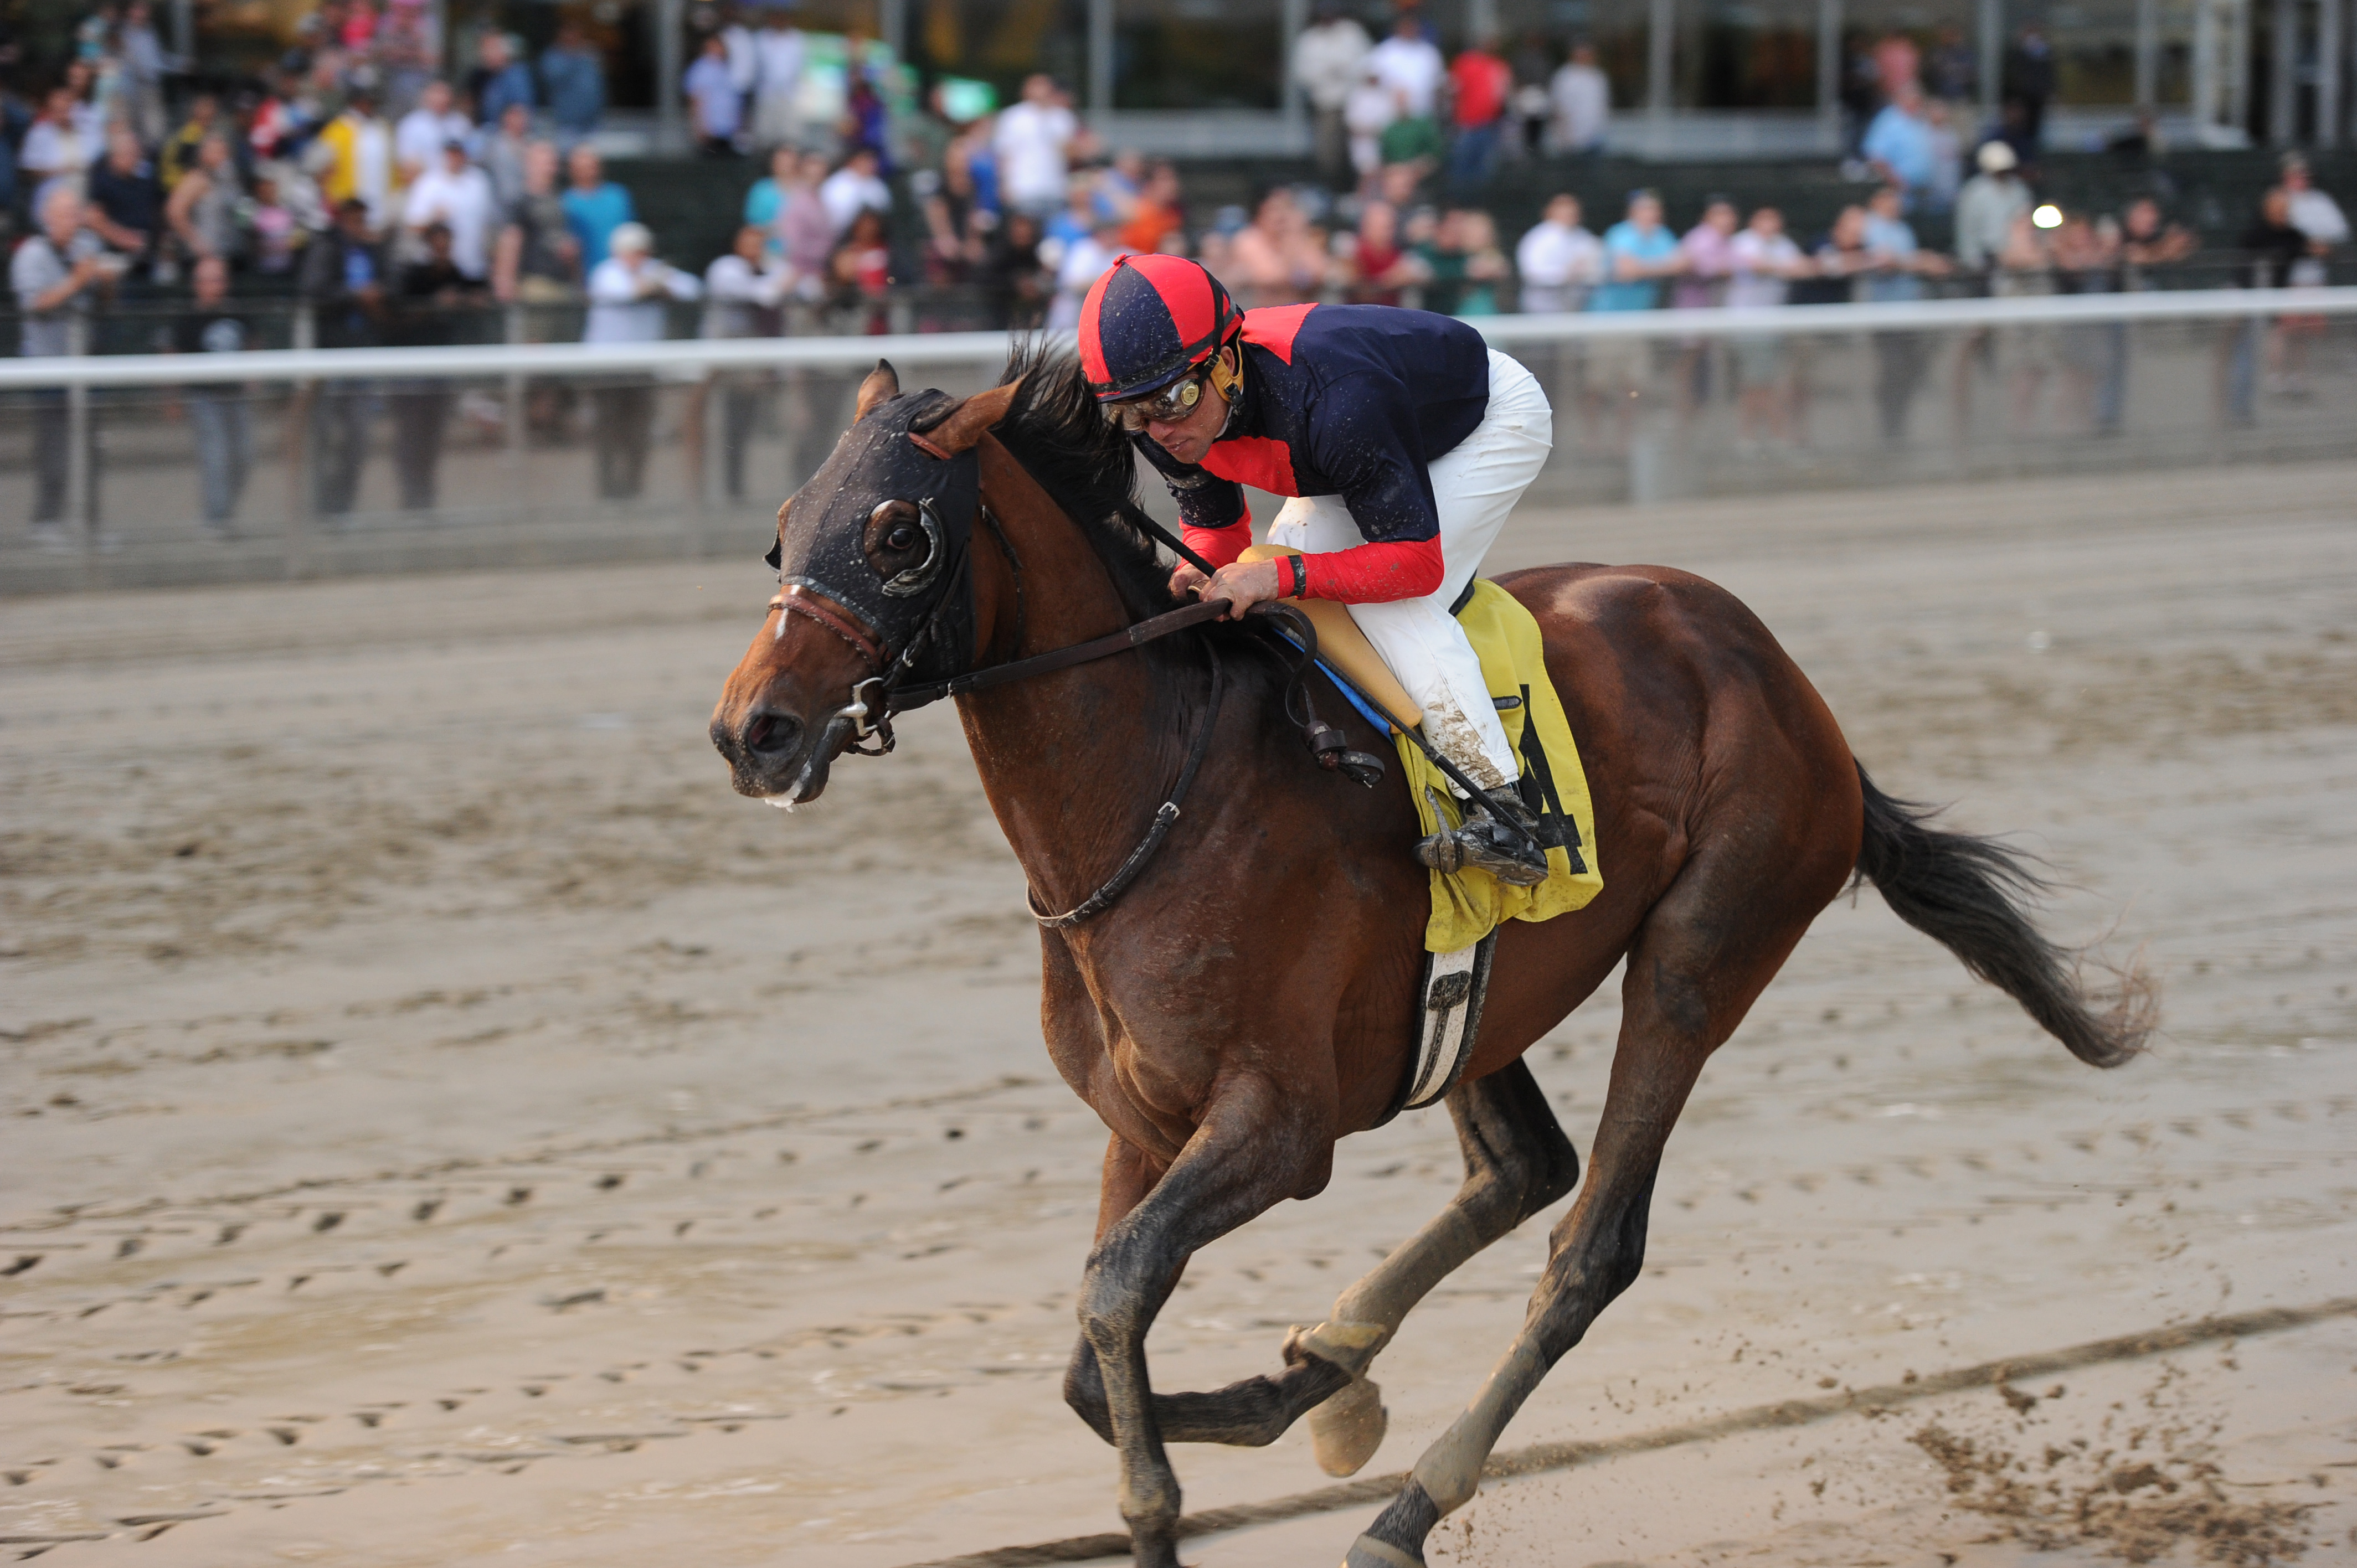 Grade I Belmont winner Tonalist winning the Grade II Peter Pan by 4 lengths. Photo courtesy Chelsea Durand.